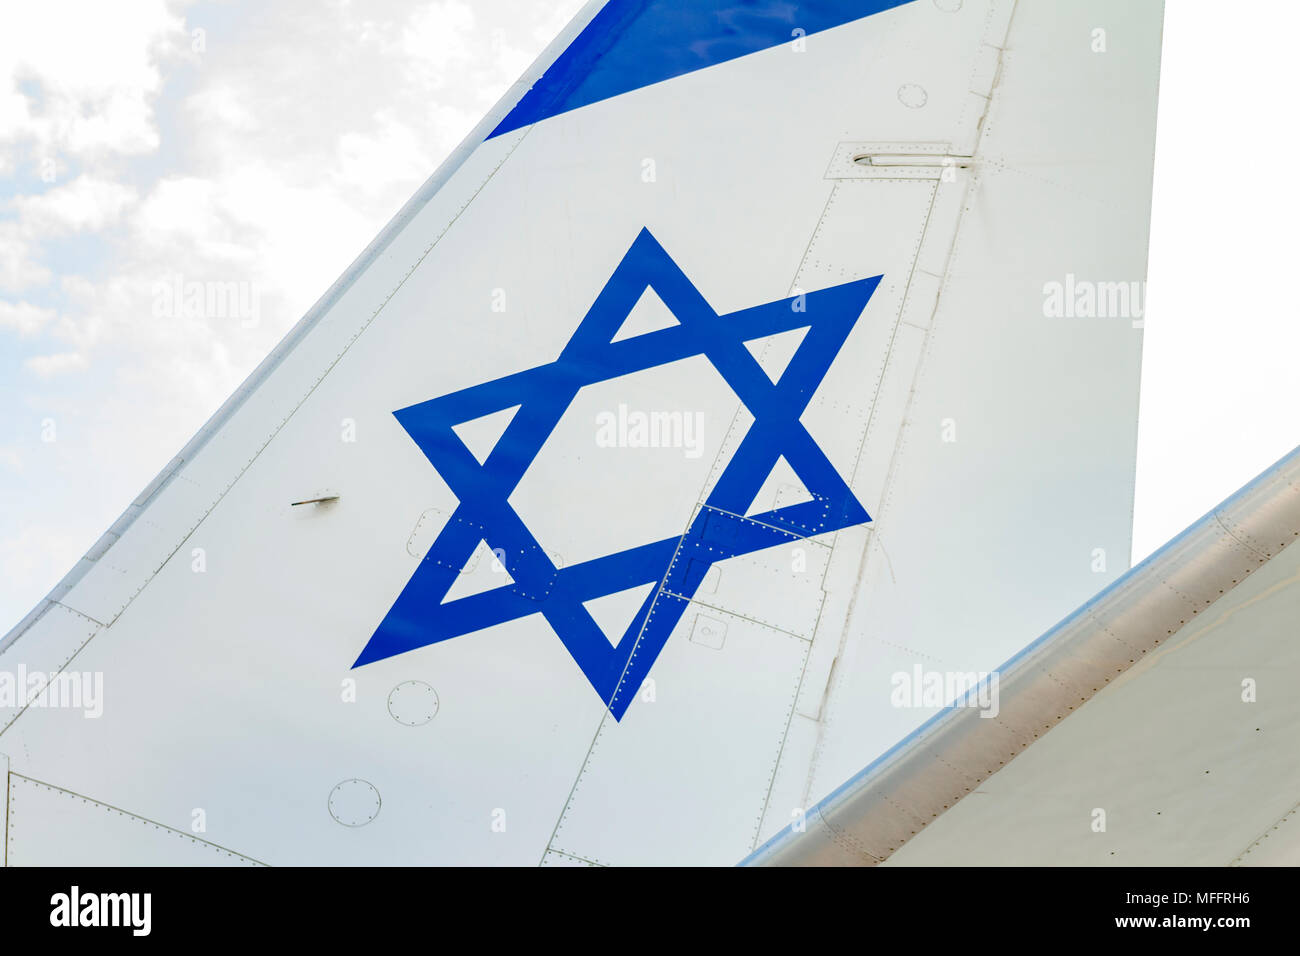 Tailplane of an airplane with a drawing of the Israeli flag. - Stock Image